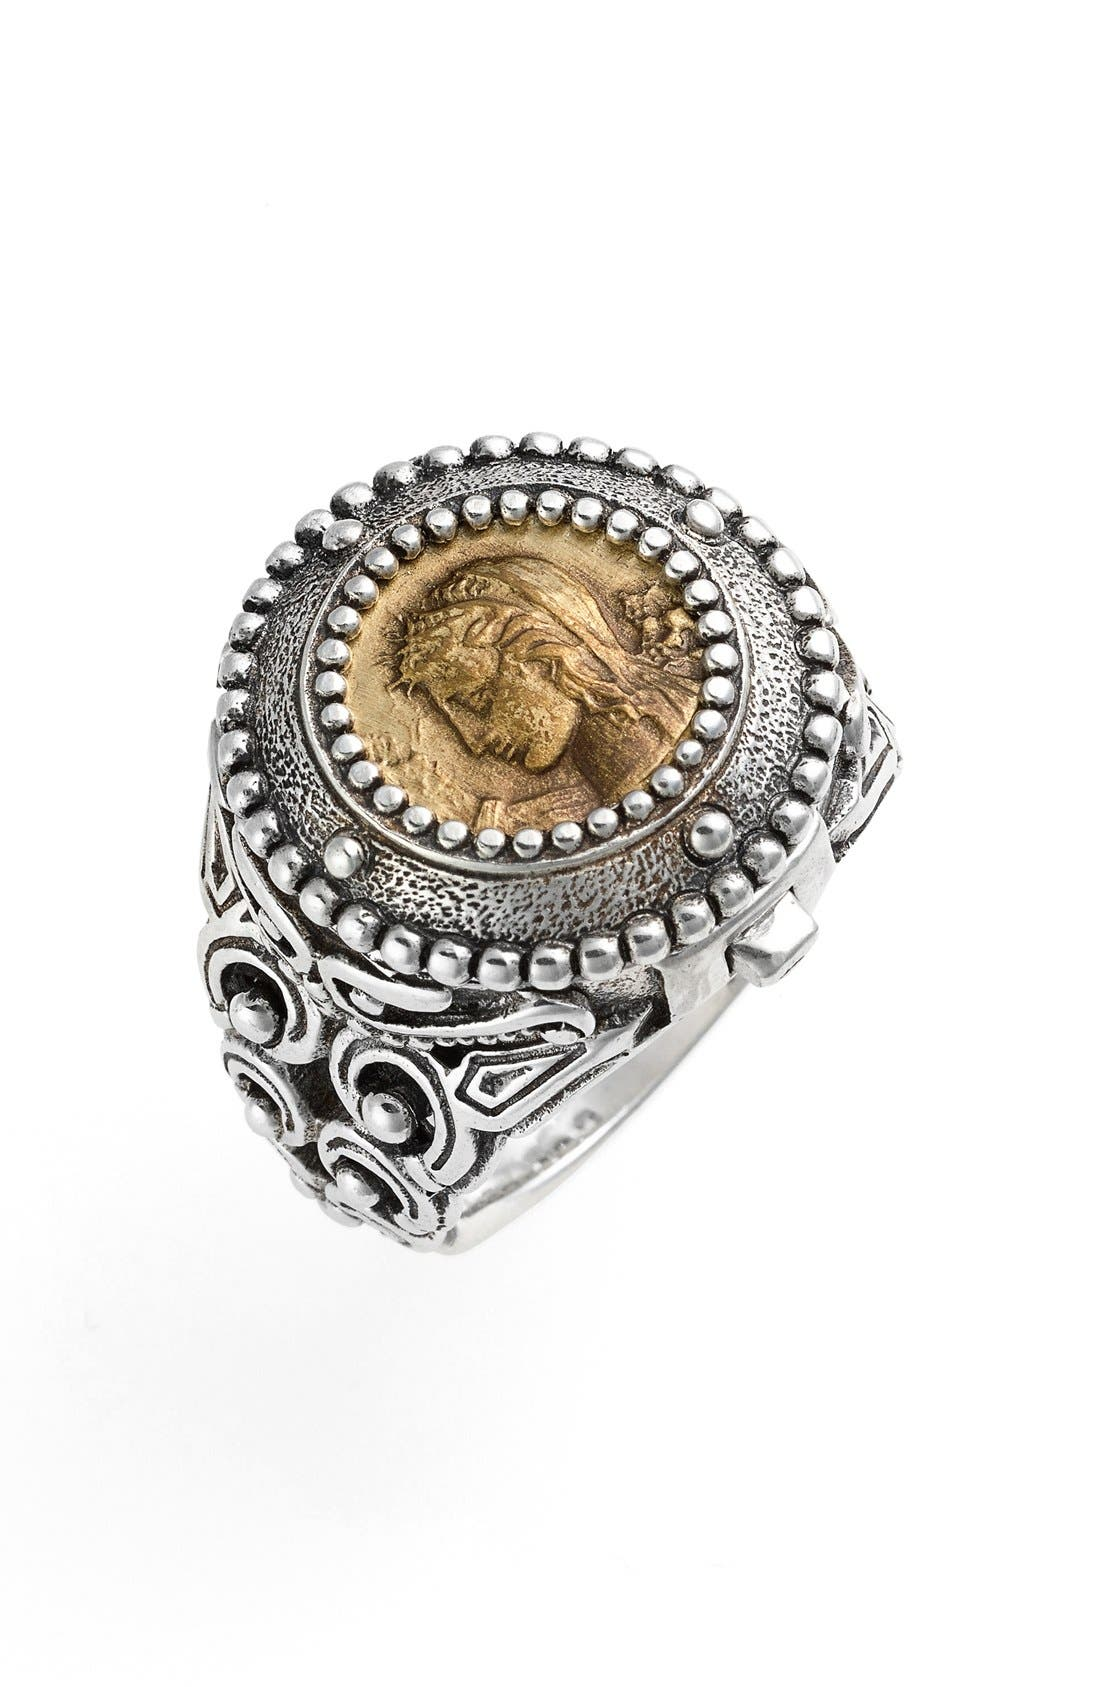 'Arethusa' Hinged Coin Ring,                             Main thumbnail 1, color,                             Silver/ Bronze